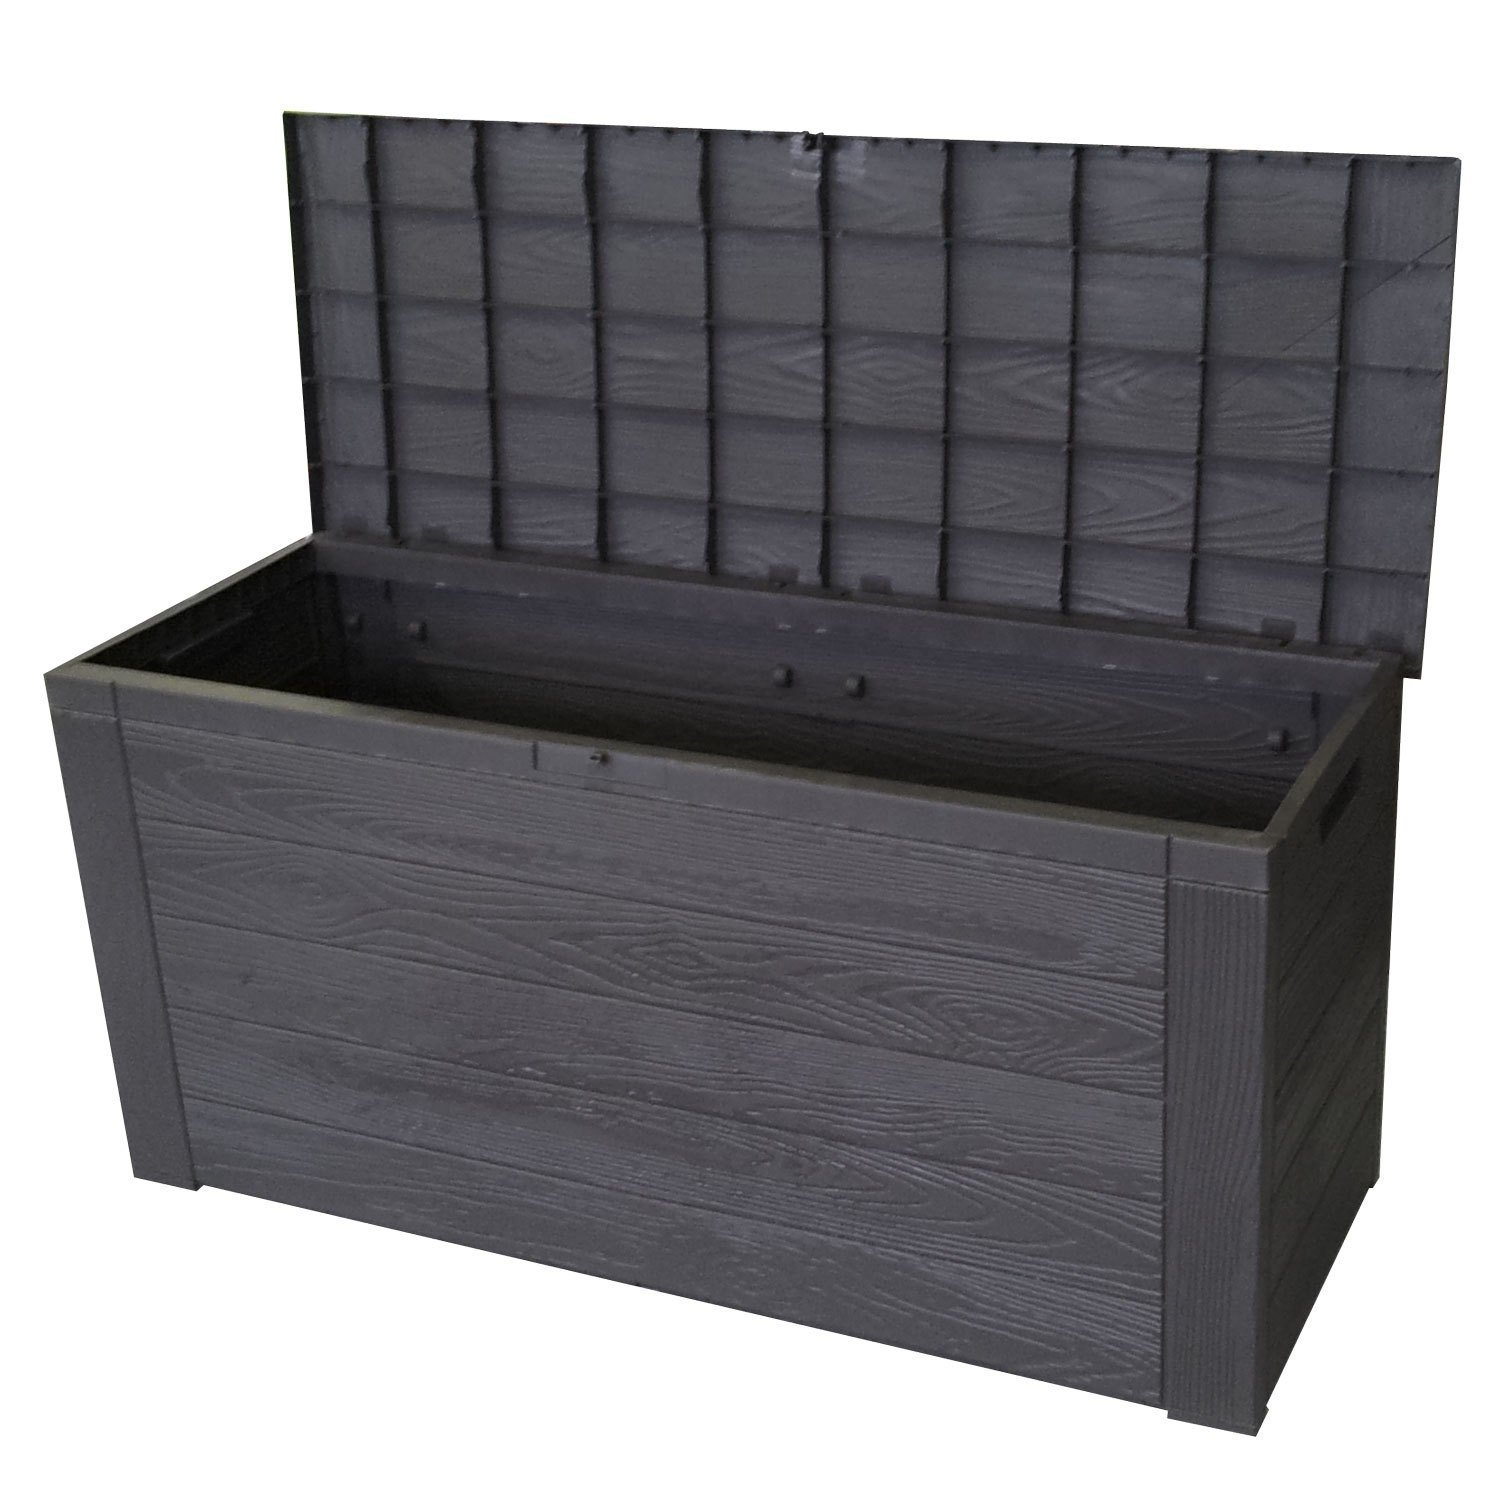 Bench Pool Storage Chest Small Outdoor Bin Wood Cabinet Garden Box For Size  1500 X 1500